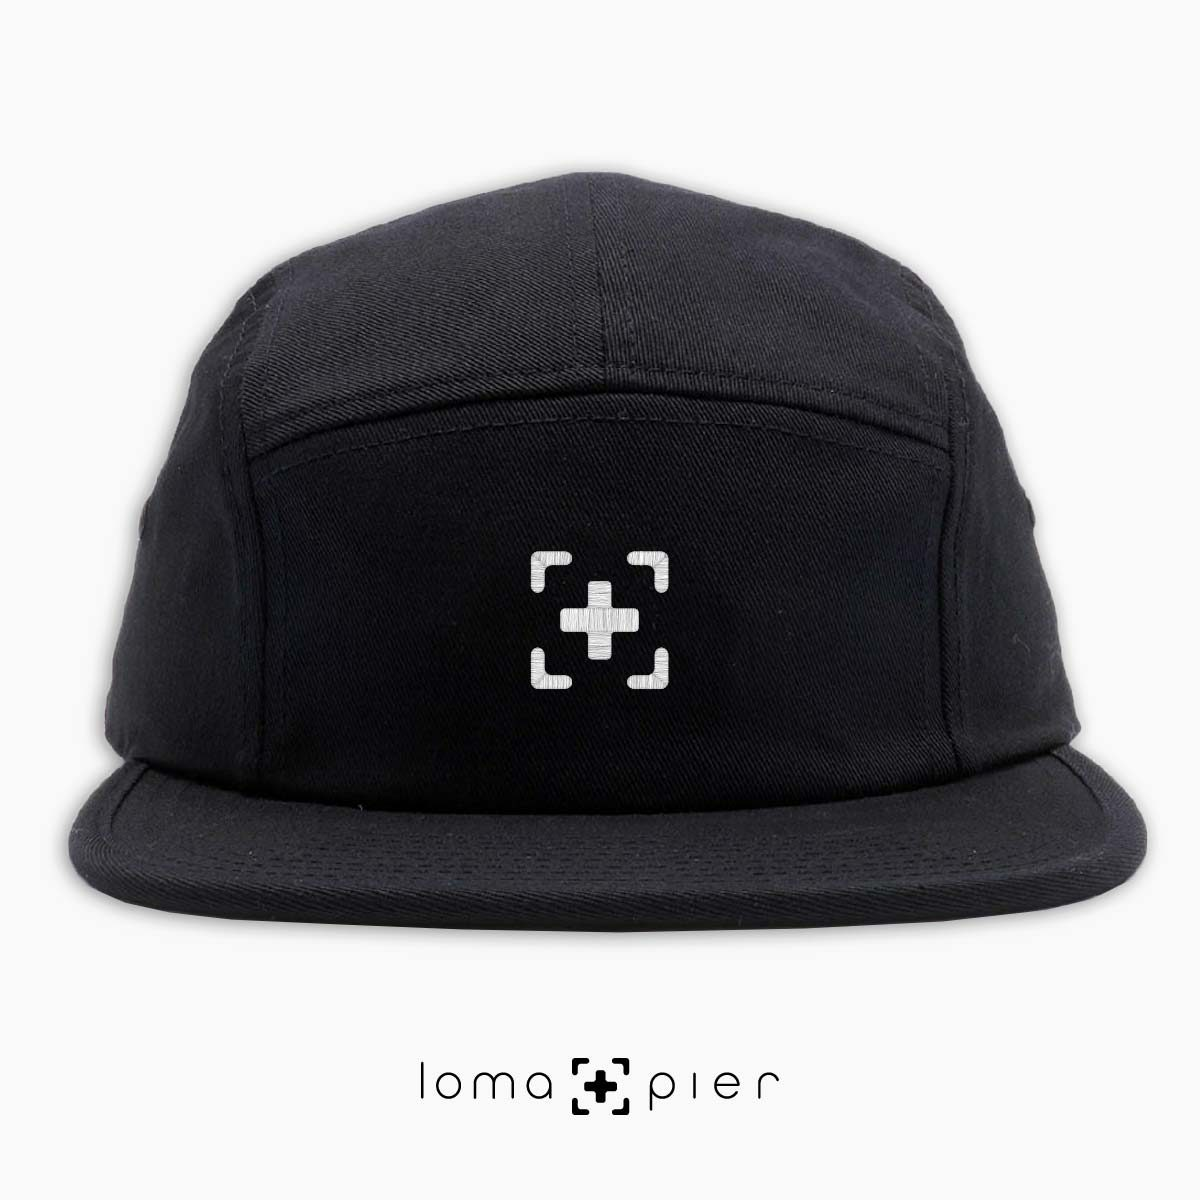 [+] loma+pier icon embroidered on a black cotton 5-panel hat with white thread by loma+pier hat store